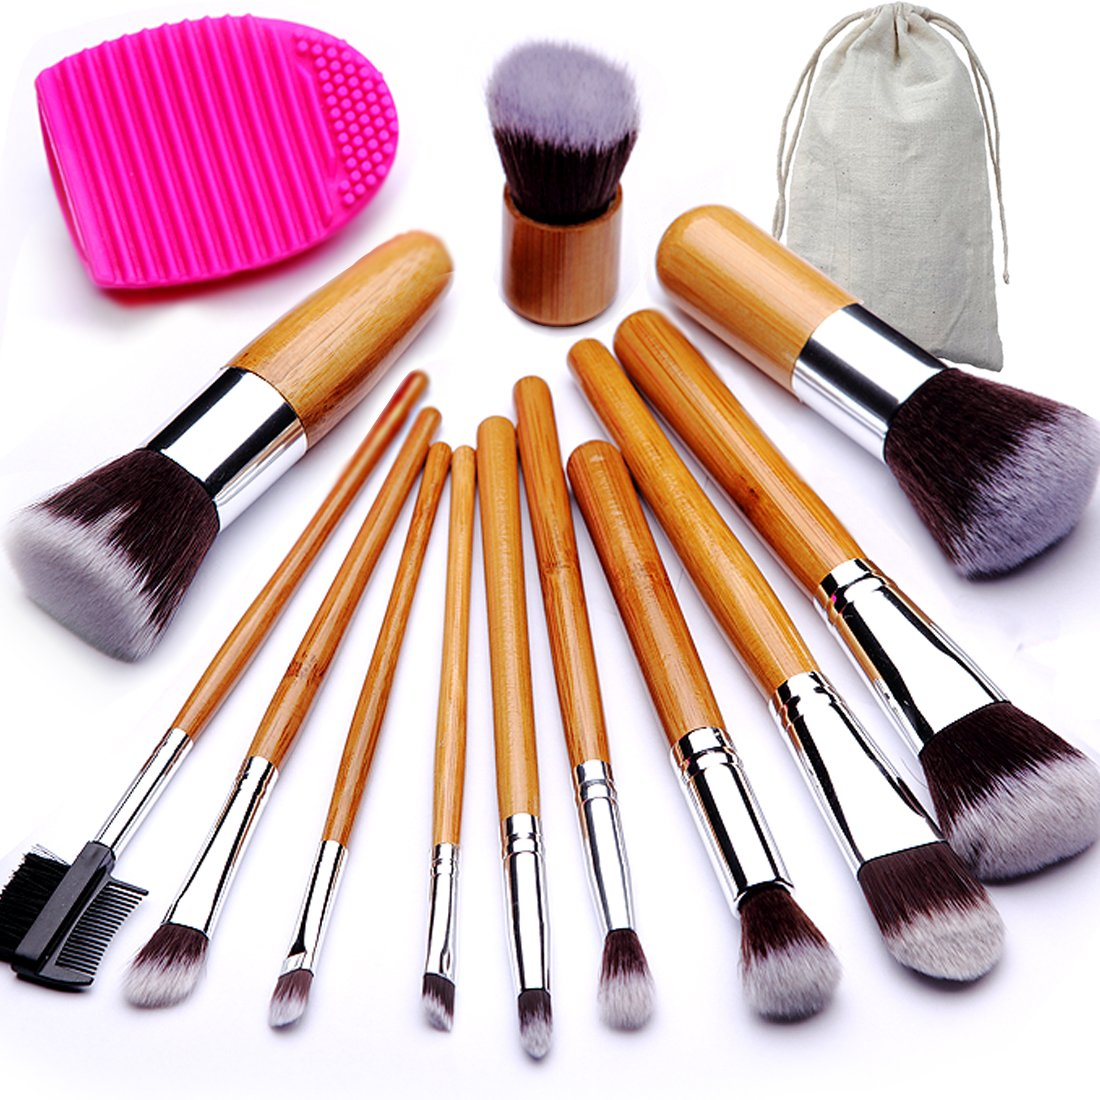 BEAKEY Makeup Brush Set Premium Synthetic Kabuki Foundation Face Powder Blush Eyeshadow Brushes Makeup Brush Kit with Blender Sponge and Brush Egg (10+2pcs,GOLD-WHITE) Noble Life